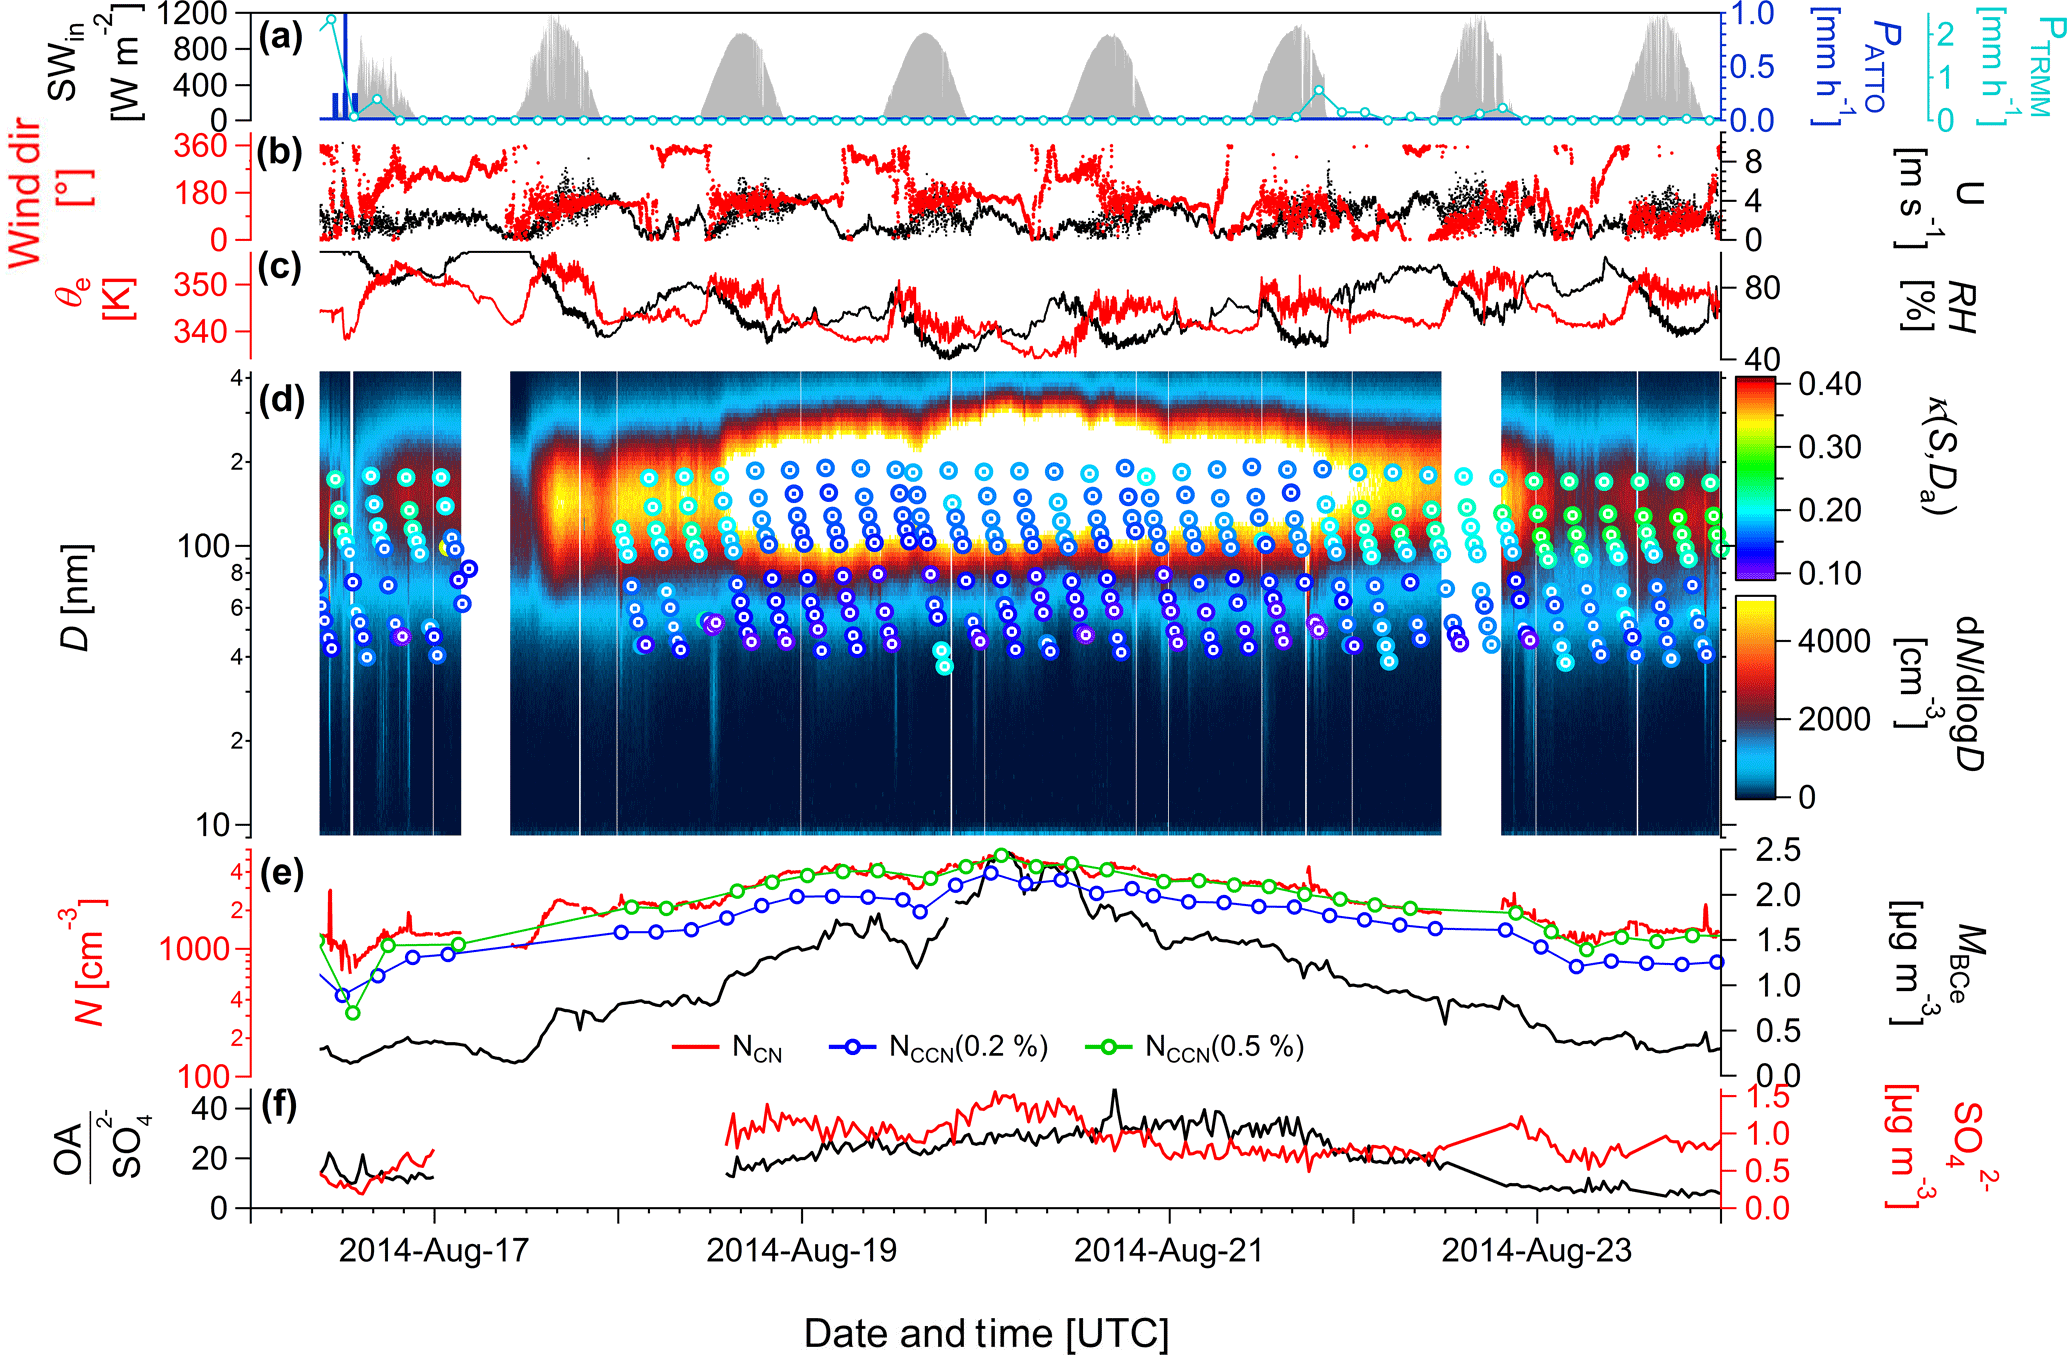 ACP - Long-term observations of cloud condensation nuclei